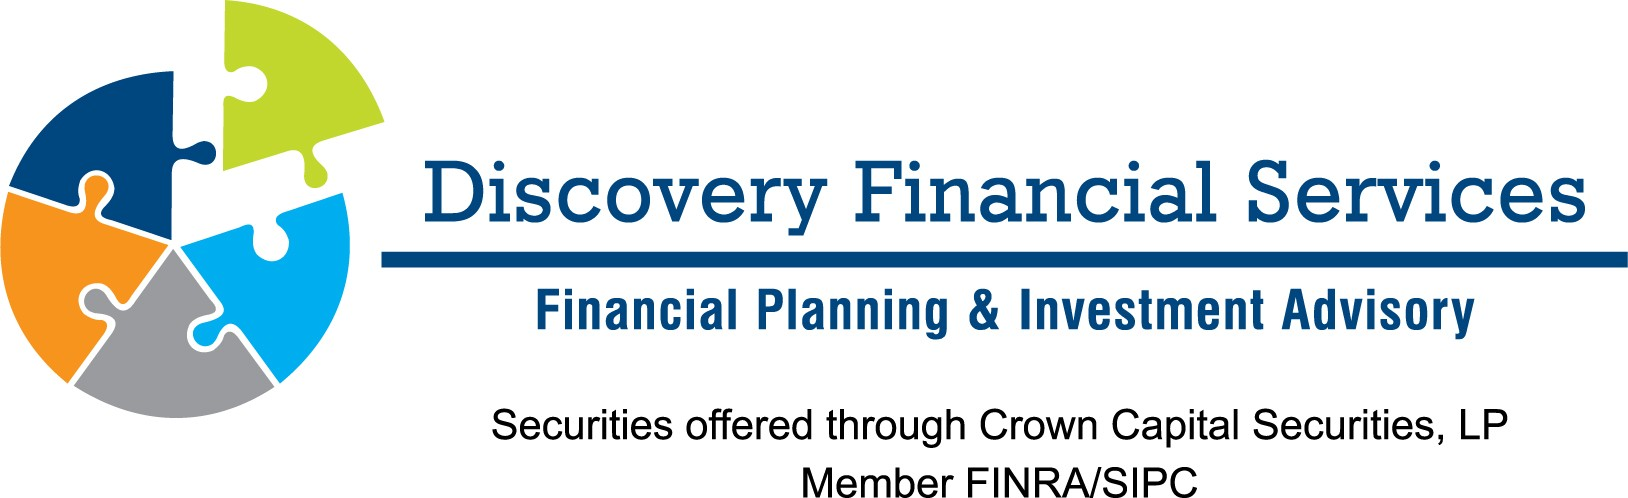 Discovery Financial Services